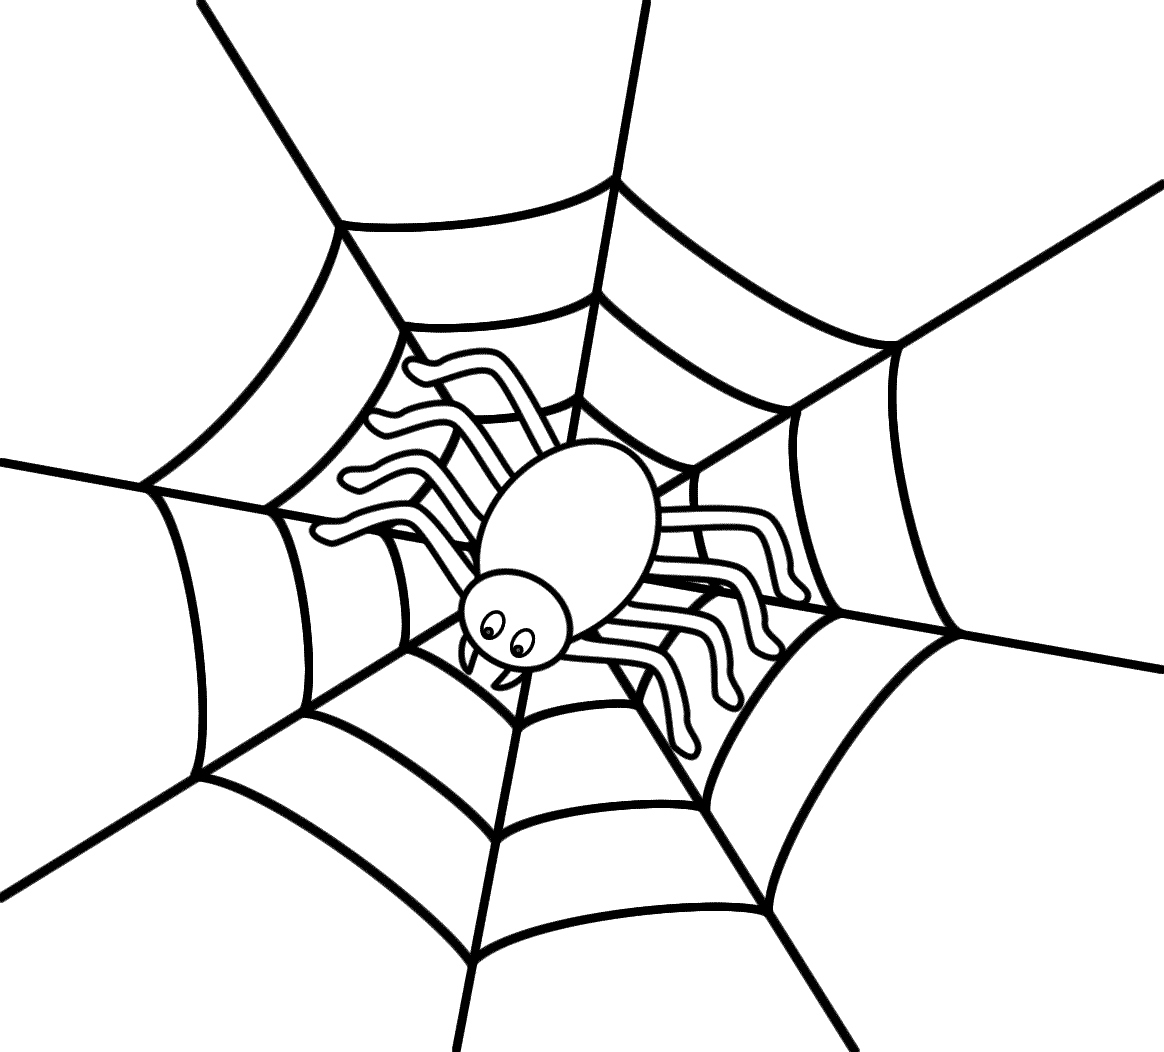 1164x1052 Spider Coloring Page Elegant Spider Colour Coloring Pages Logo